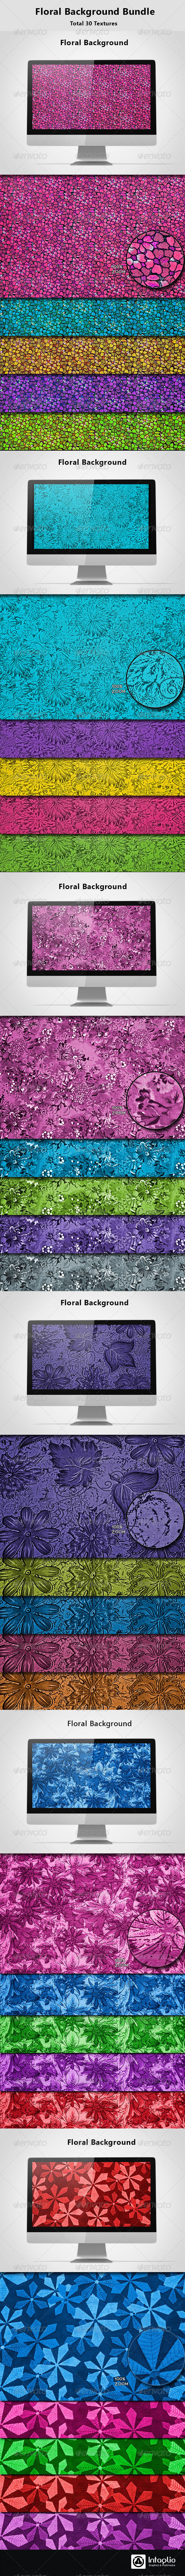 Floral Background Bundle 02 - Miscellaneous Backgrounds